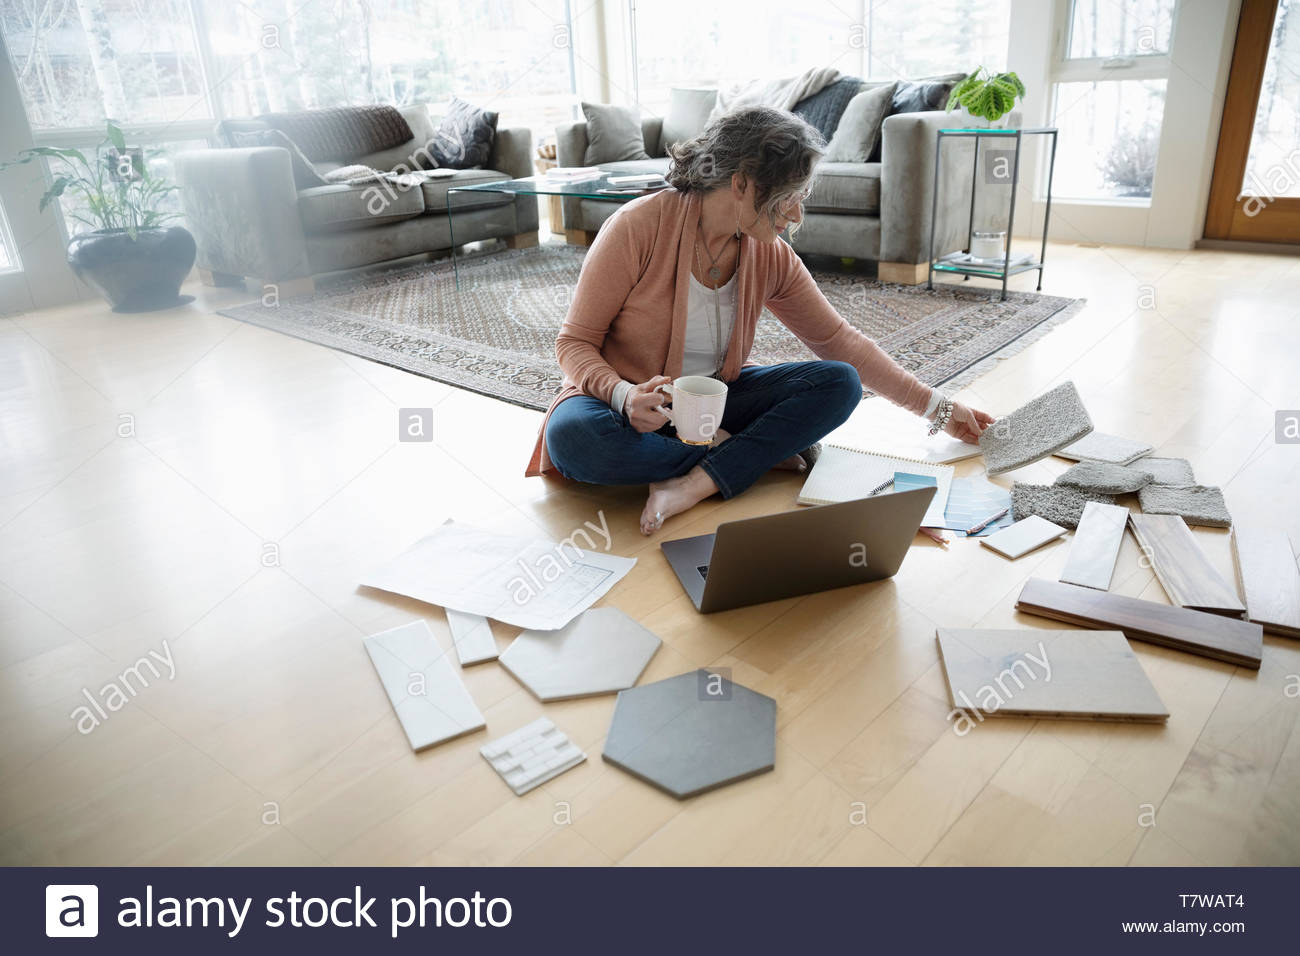 Senior woman redecorating, looking at swatches on floor - Stock Image